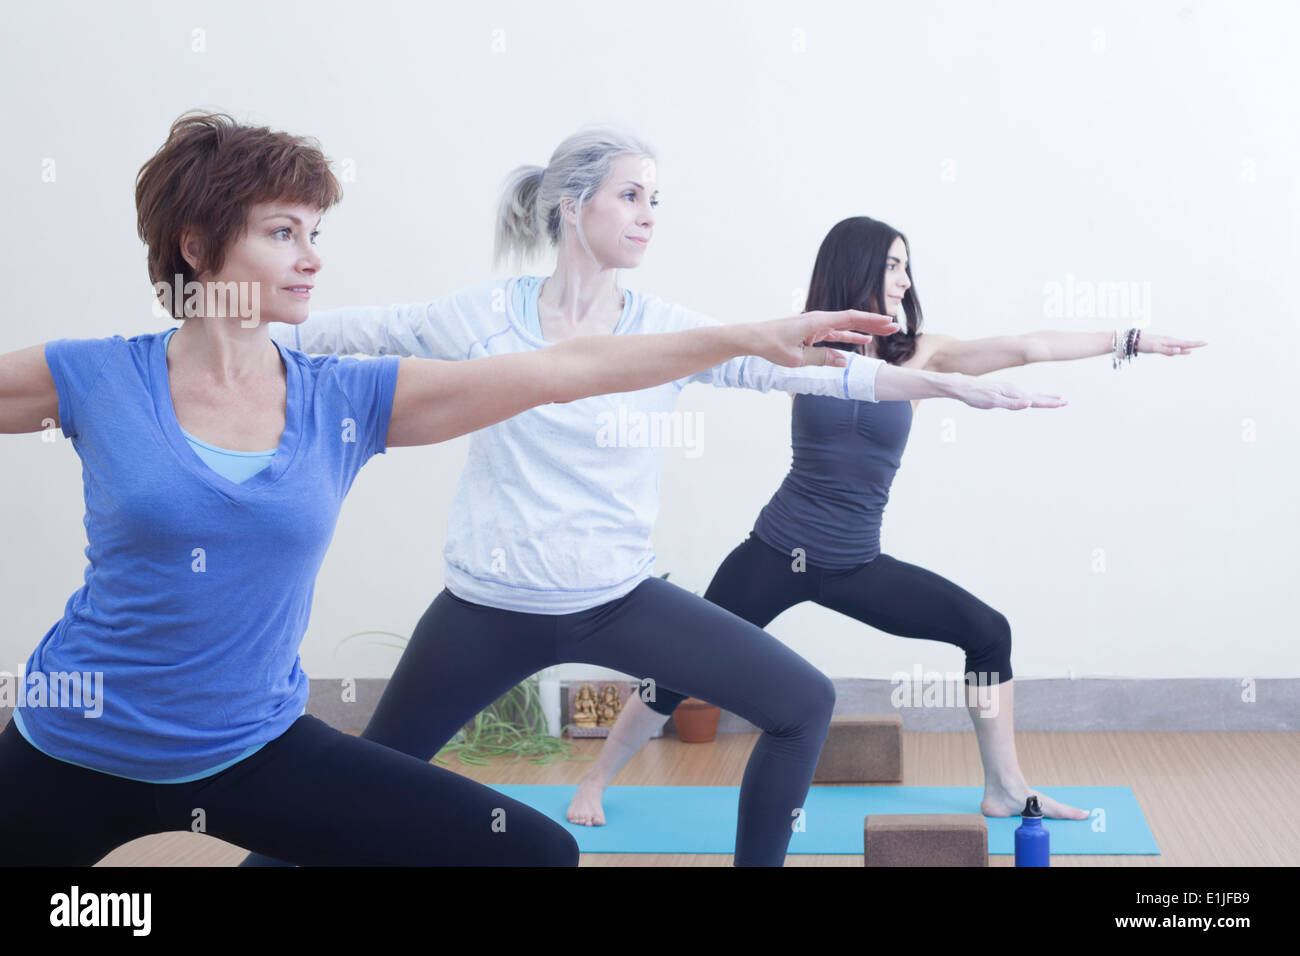 Women in warrior pose - Stock Image